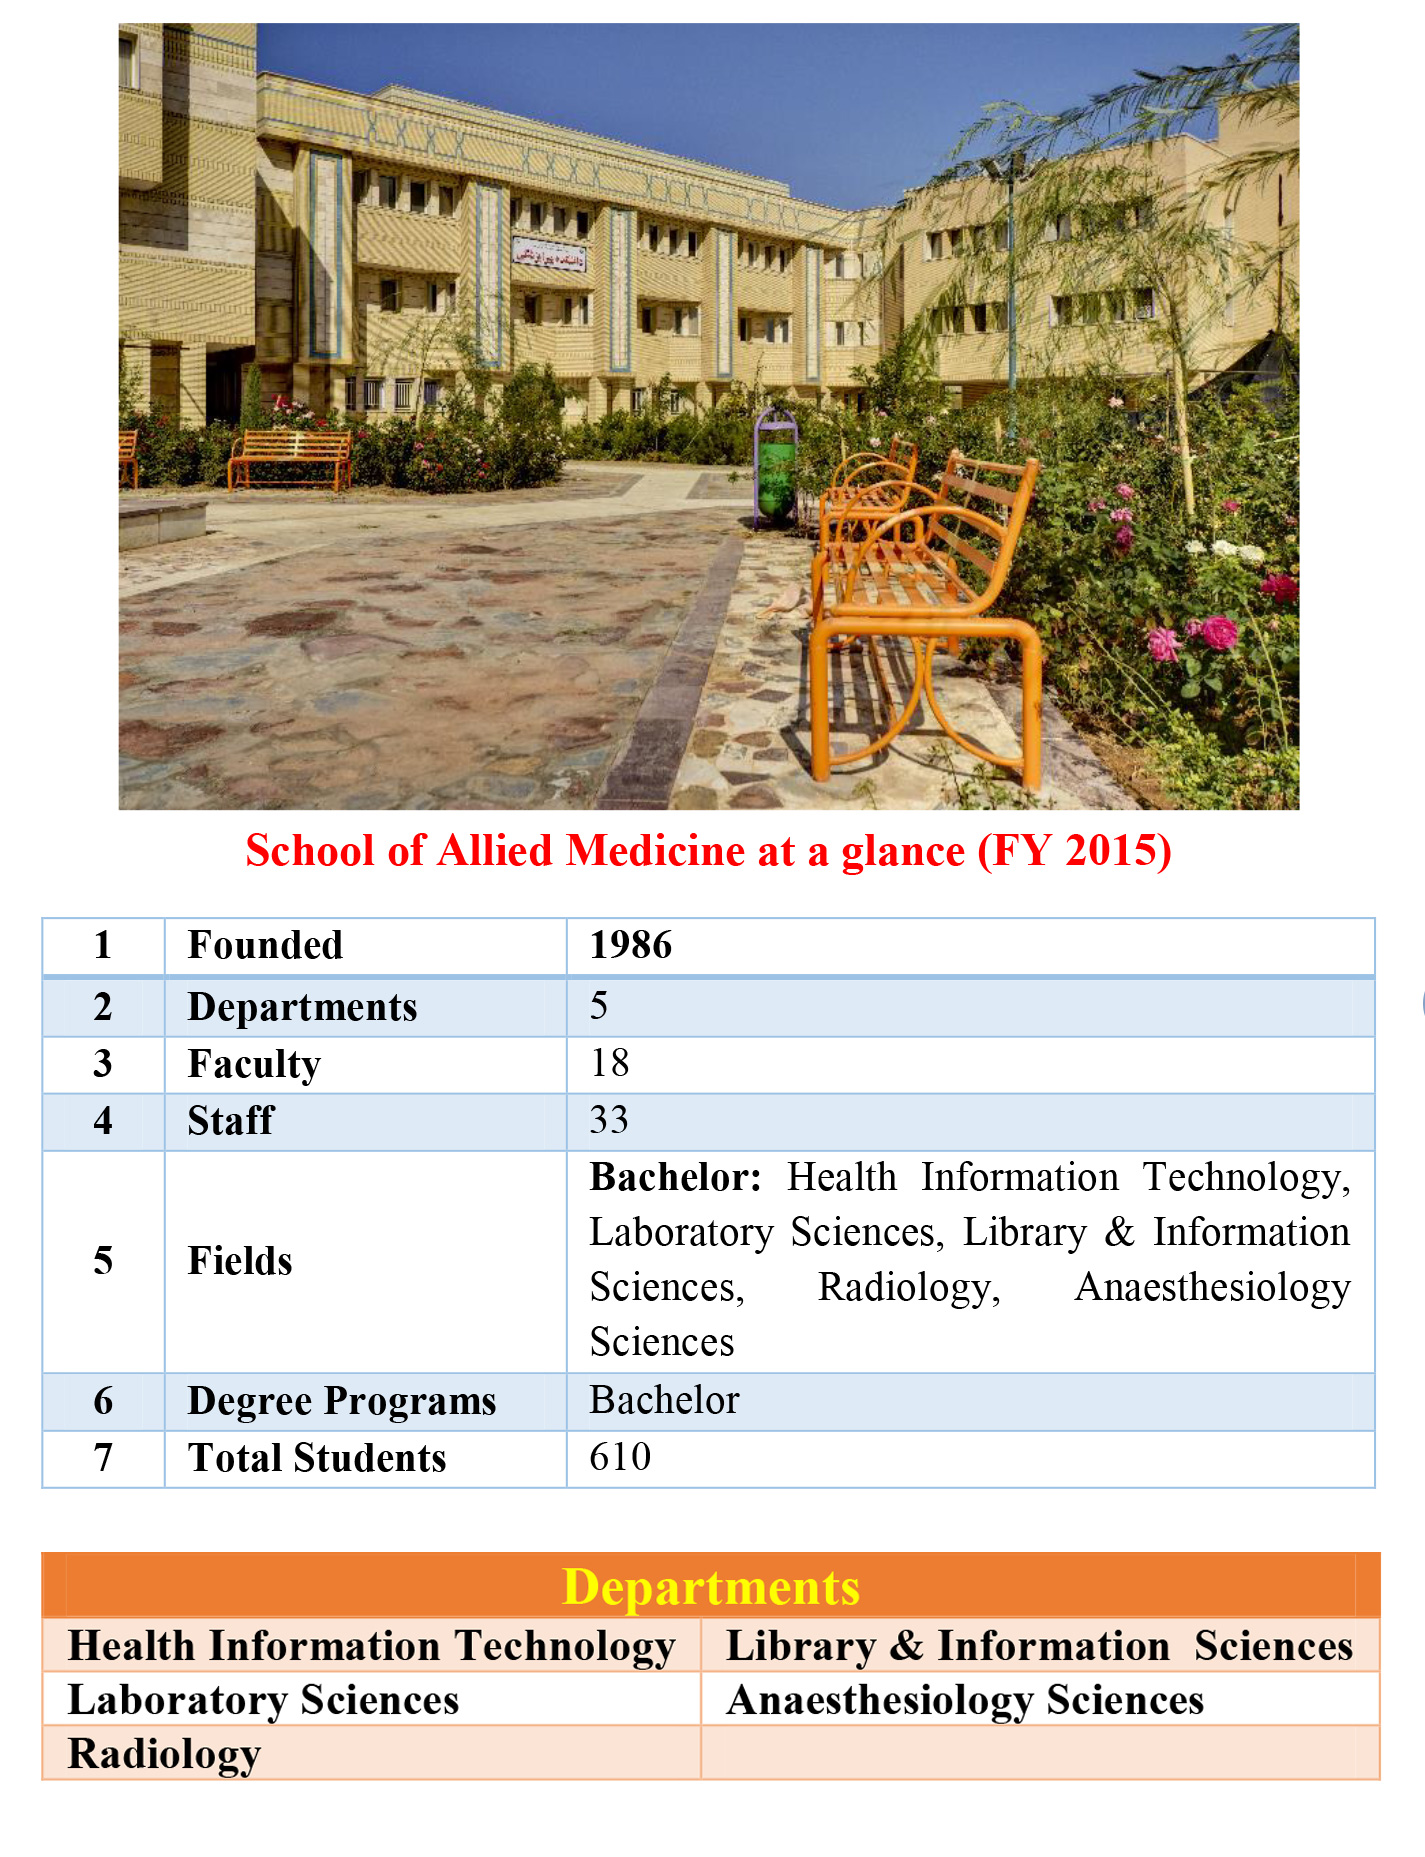 School of Allied Medicine at a glance (FY 2015)